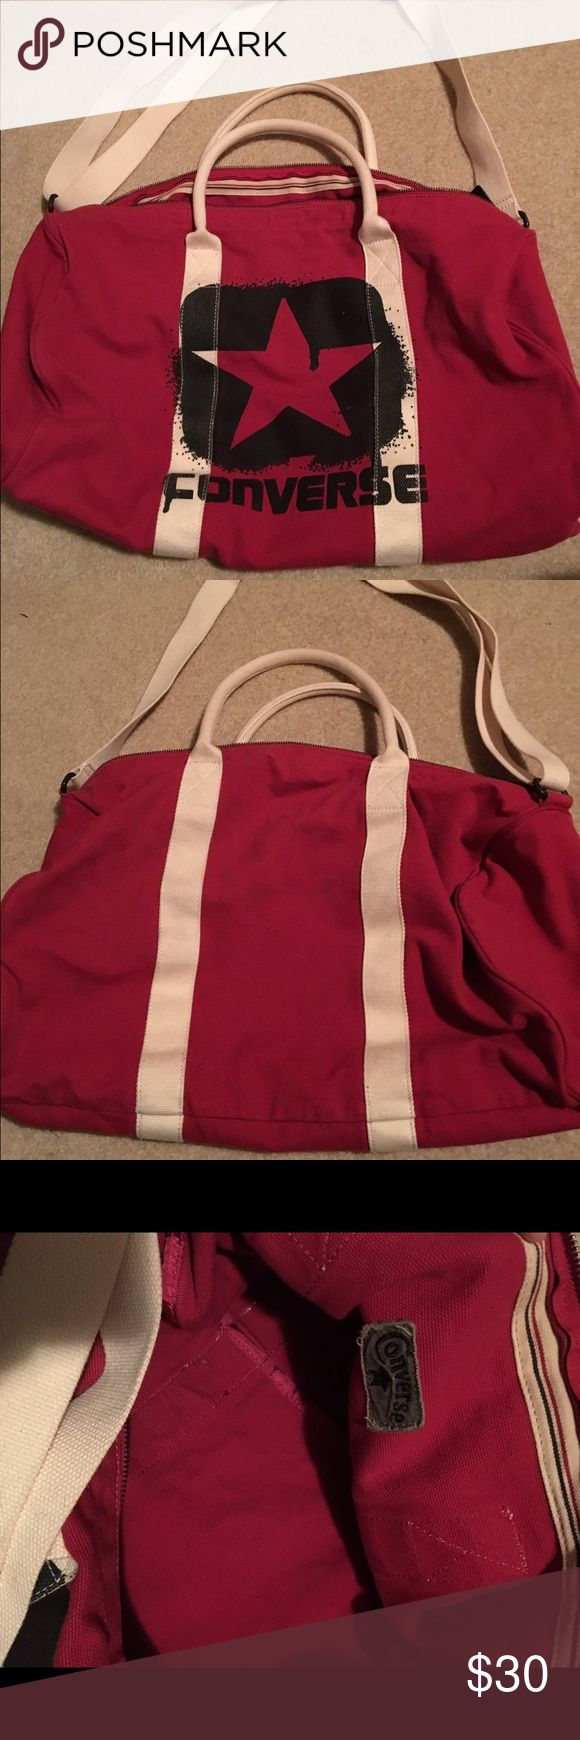 Converse duffel bag Converse duffel bag. Lightly used. No stains or damages Converse Bags Travel Bags